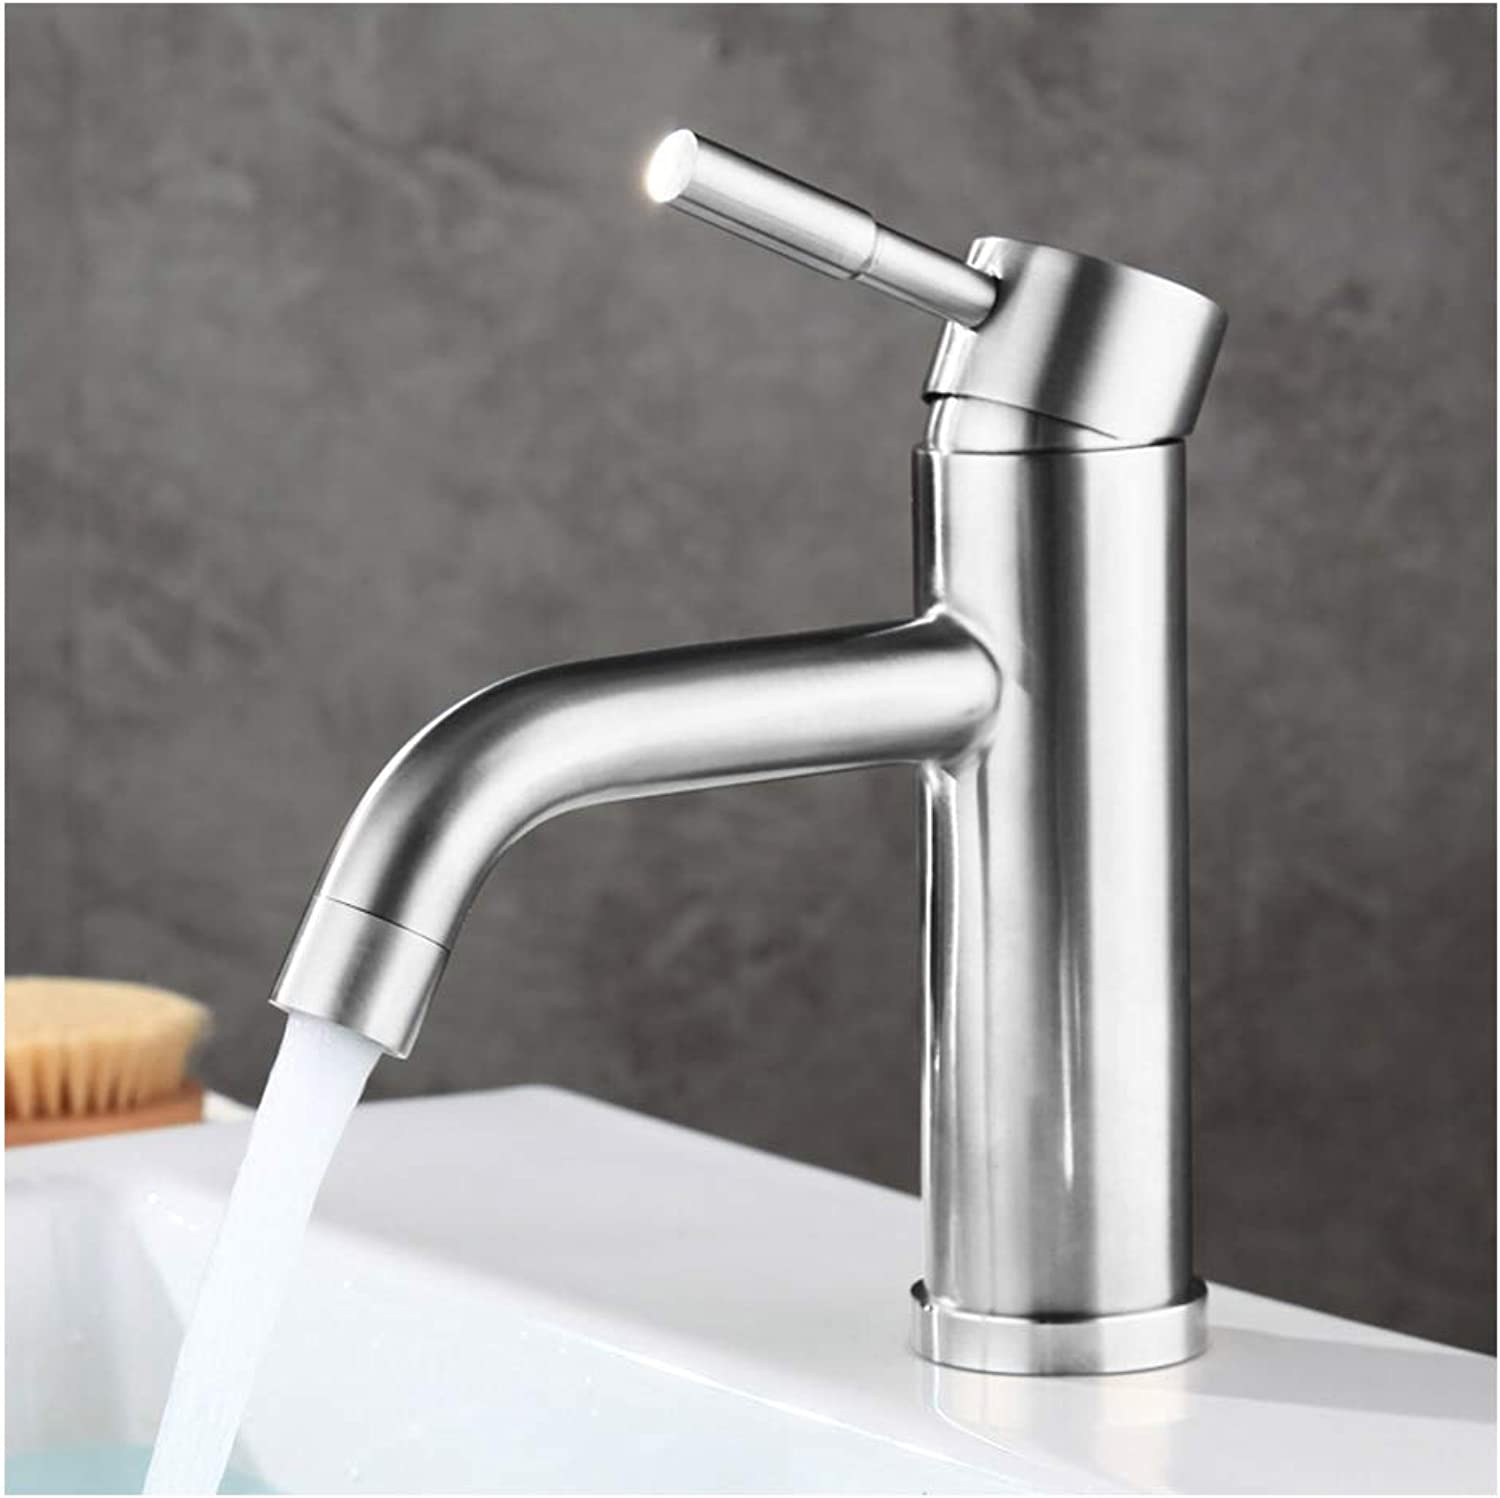 ZZKK 304 stainless steel hot and cold kitchen sink faucet kitchen faucet greenical faucet wash basin faucet thickening bathroom faucet basin faucet for bathroom kitchen,8307